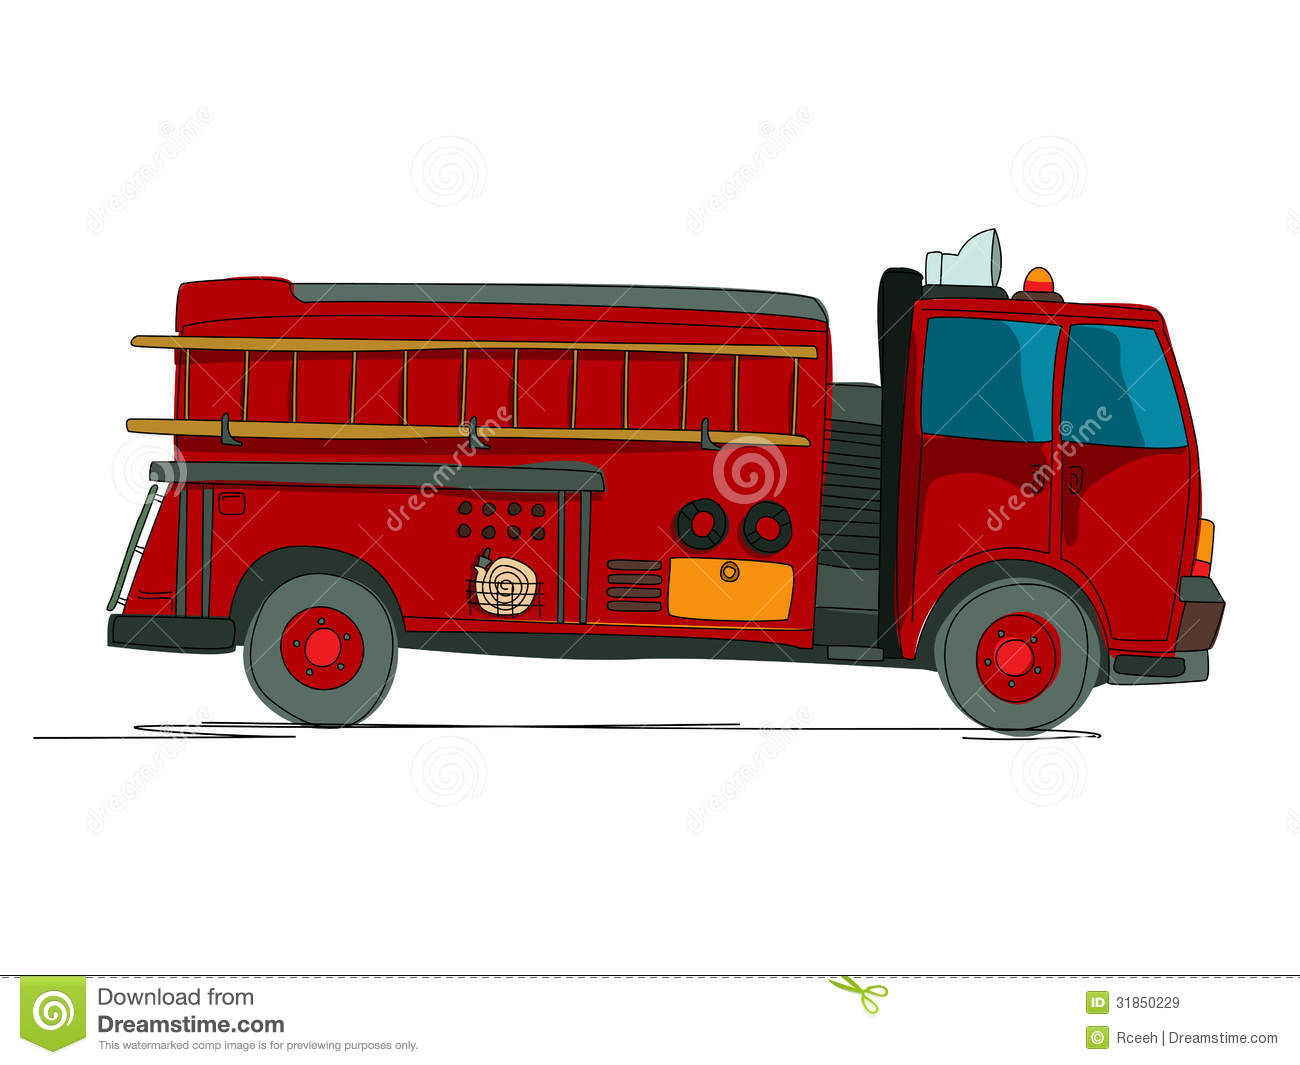 Fire truck cartoon sketch over white background.